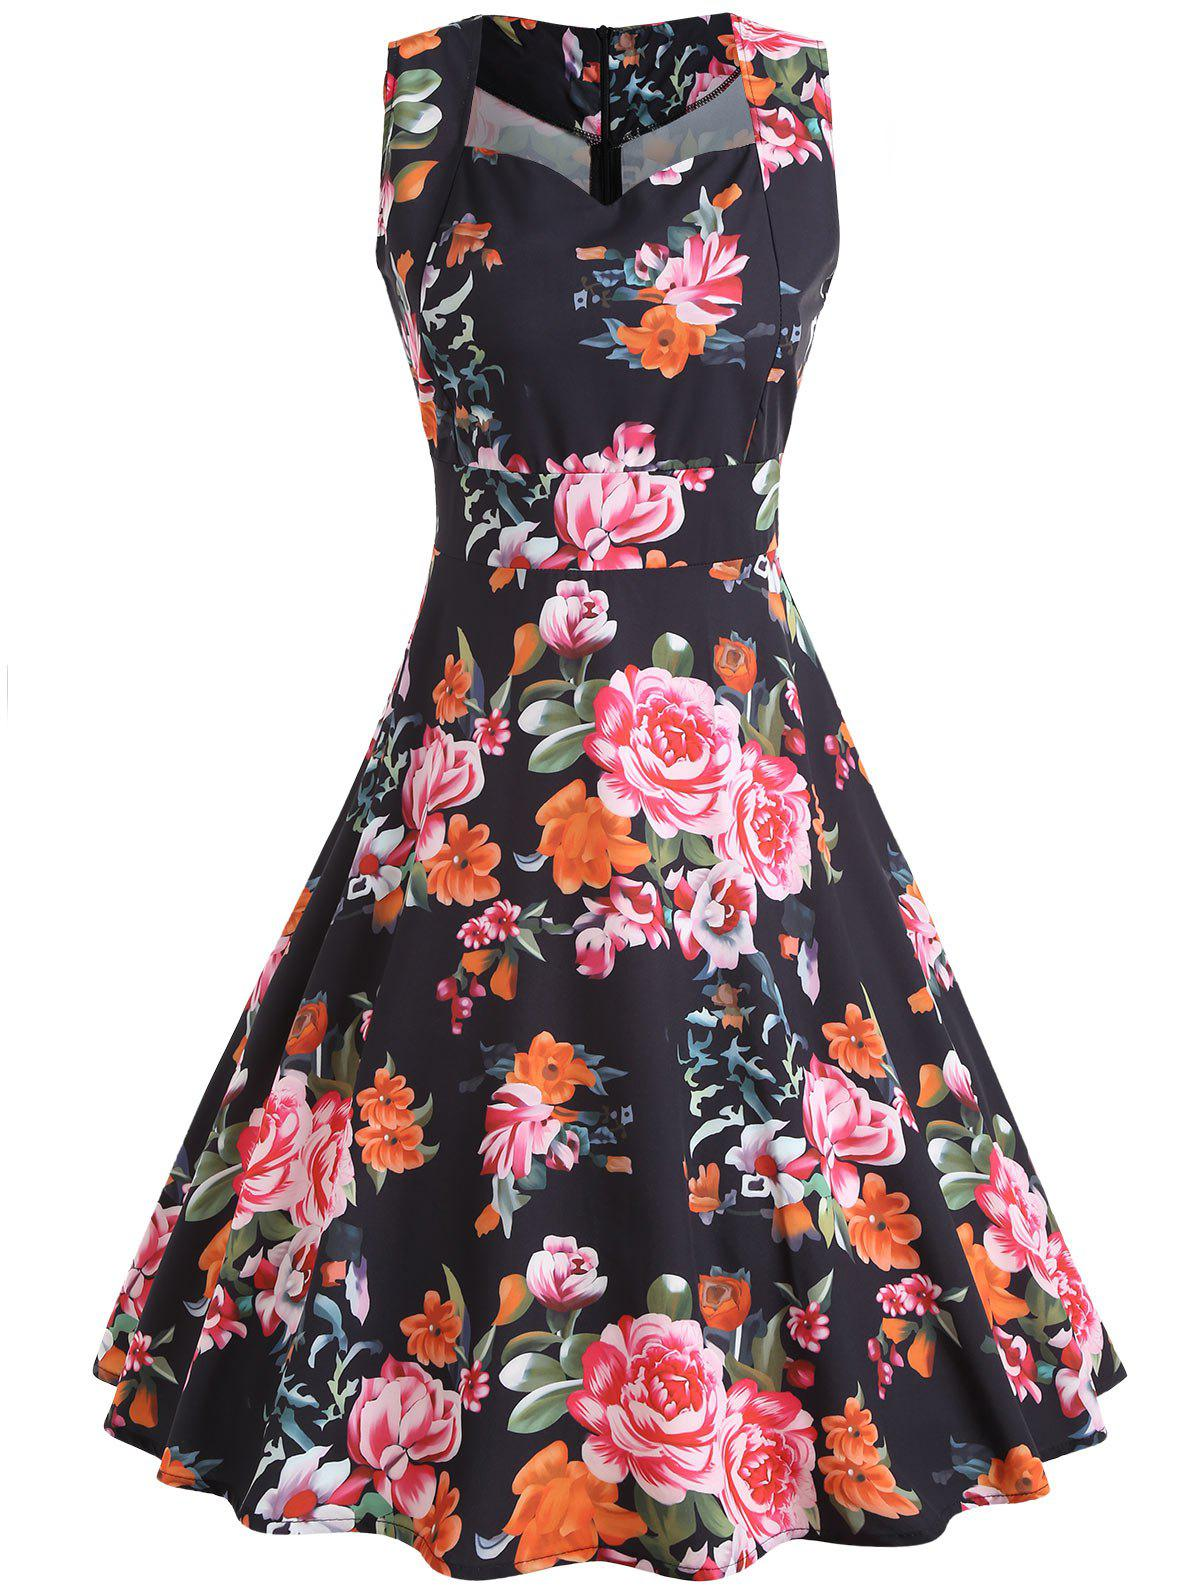 Discount Floral Print Sleeveless Vintage Dress